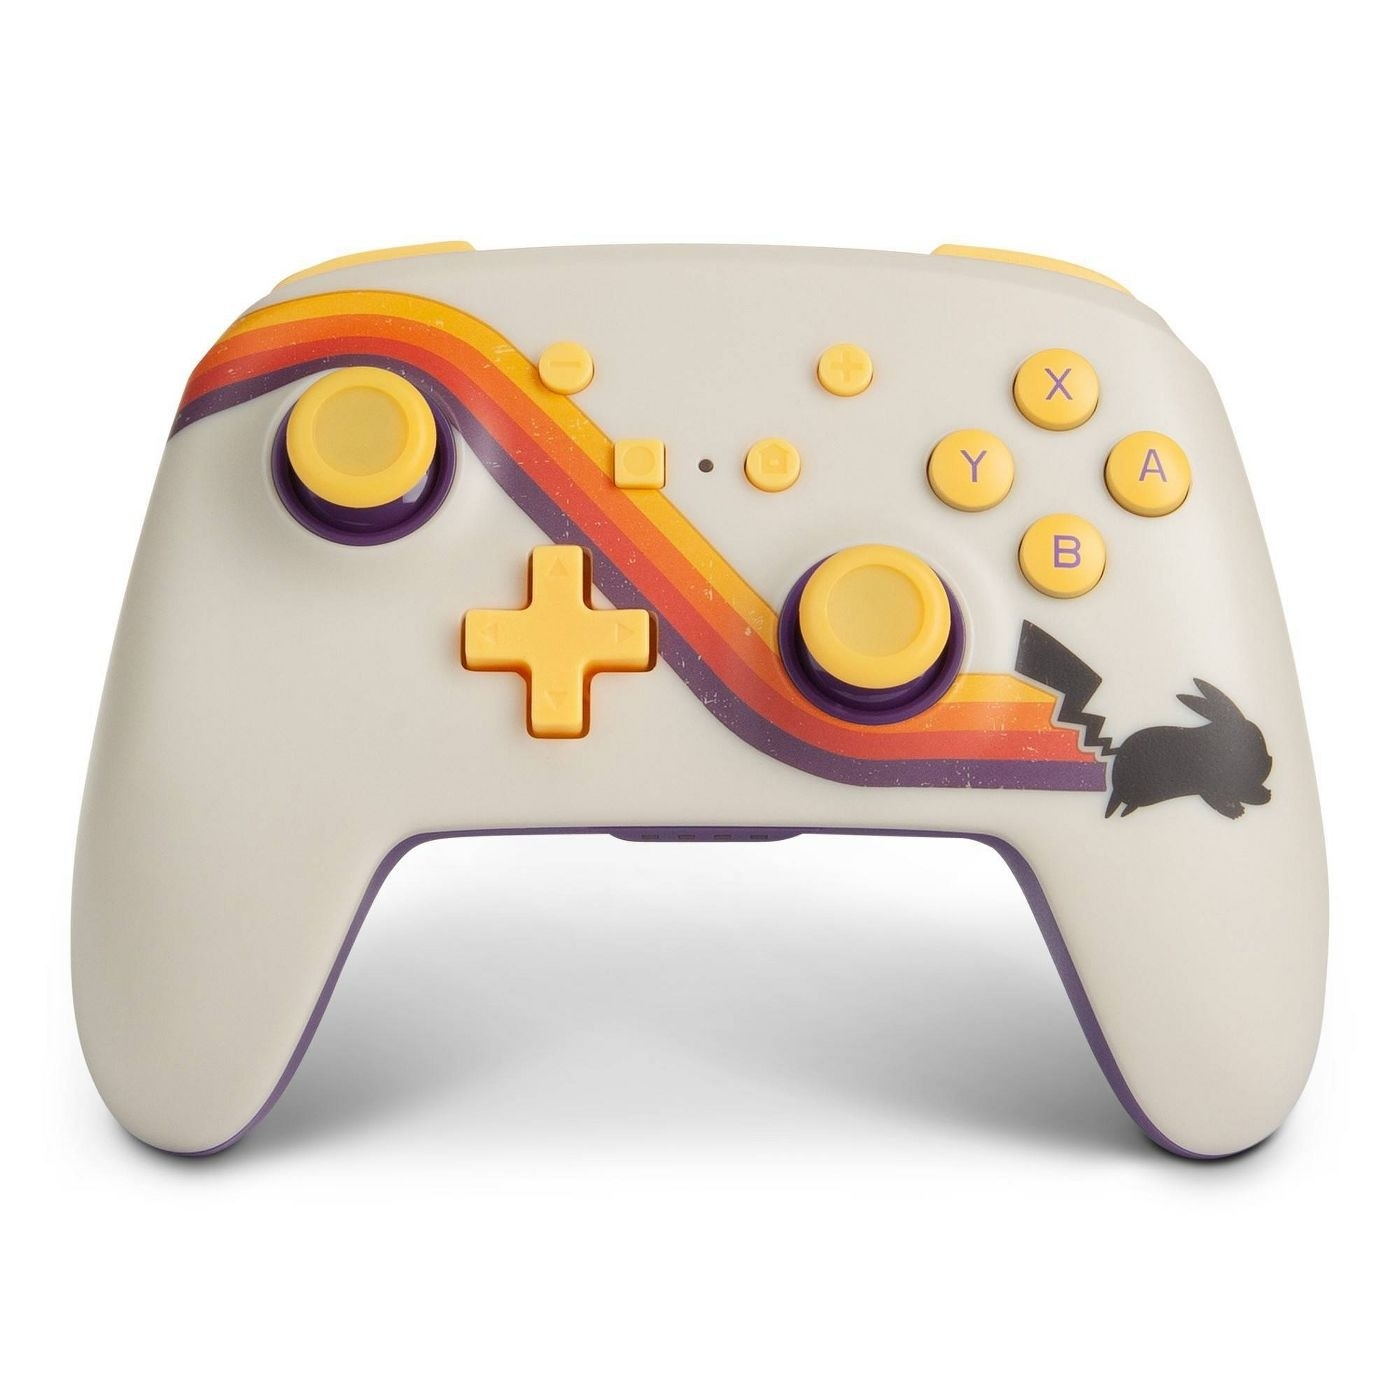 The controllers, which has a retro-style swoosh and a Pikachu profile design